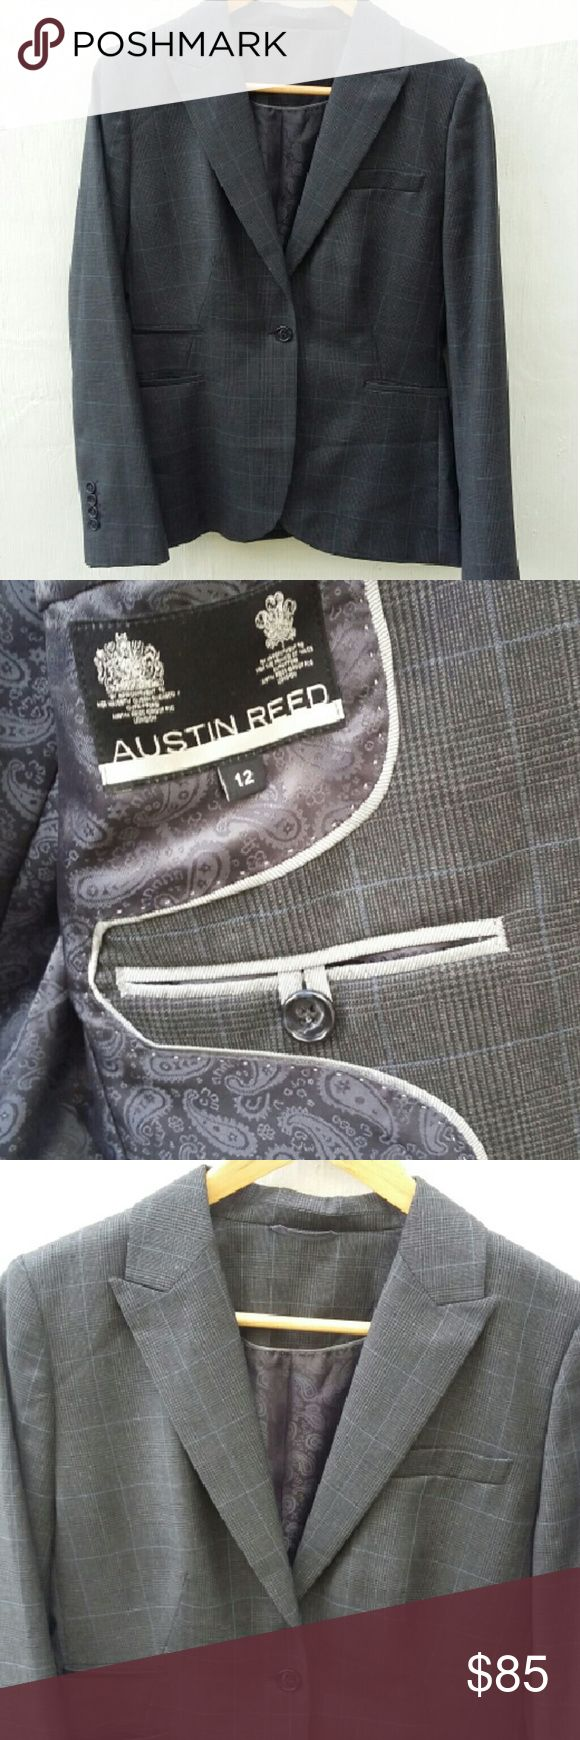 """London's Austin Reed wool blend blazer. Like new. Bond. James Bond. No, you are his superior, the magnificent Dame Judi Dench!  Four front pockets, only one of which has been pierced open. Hidden interior pocket. See pic 2.   50 percent lightweight wool and 50 percent polyester. 100 percent polyester lining. Two side slits in back.   Approx 38"""" bust when buttoned. 27"""" tall from top of shoulder to hem. Size 12 British or size 10 U.S. Dry clean. It is clean and in very exc condition.  Plz see…"""